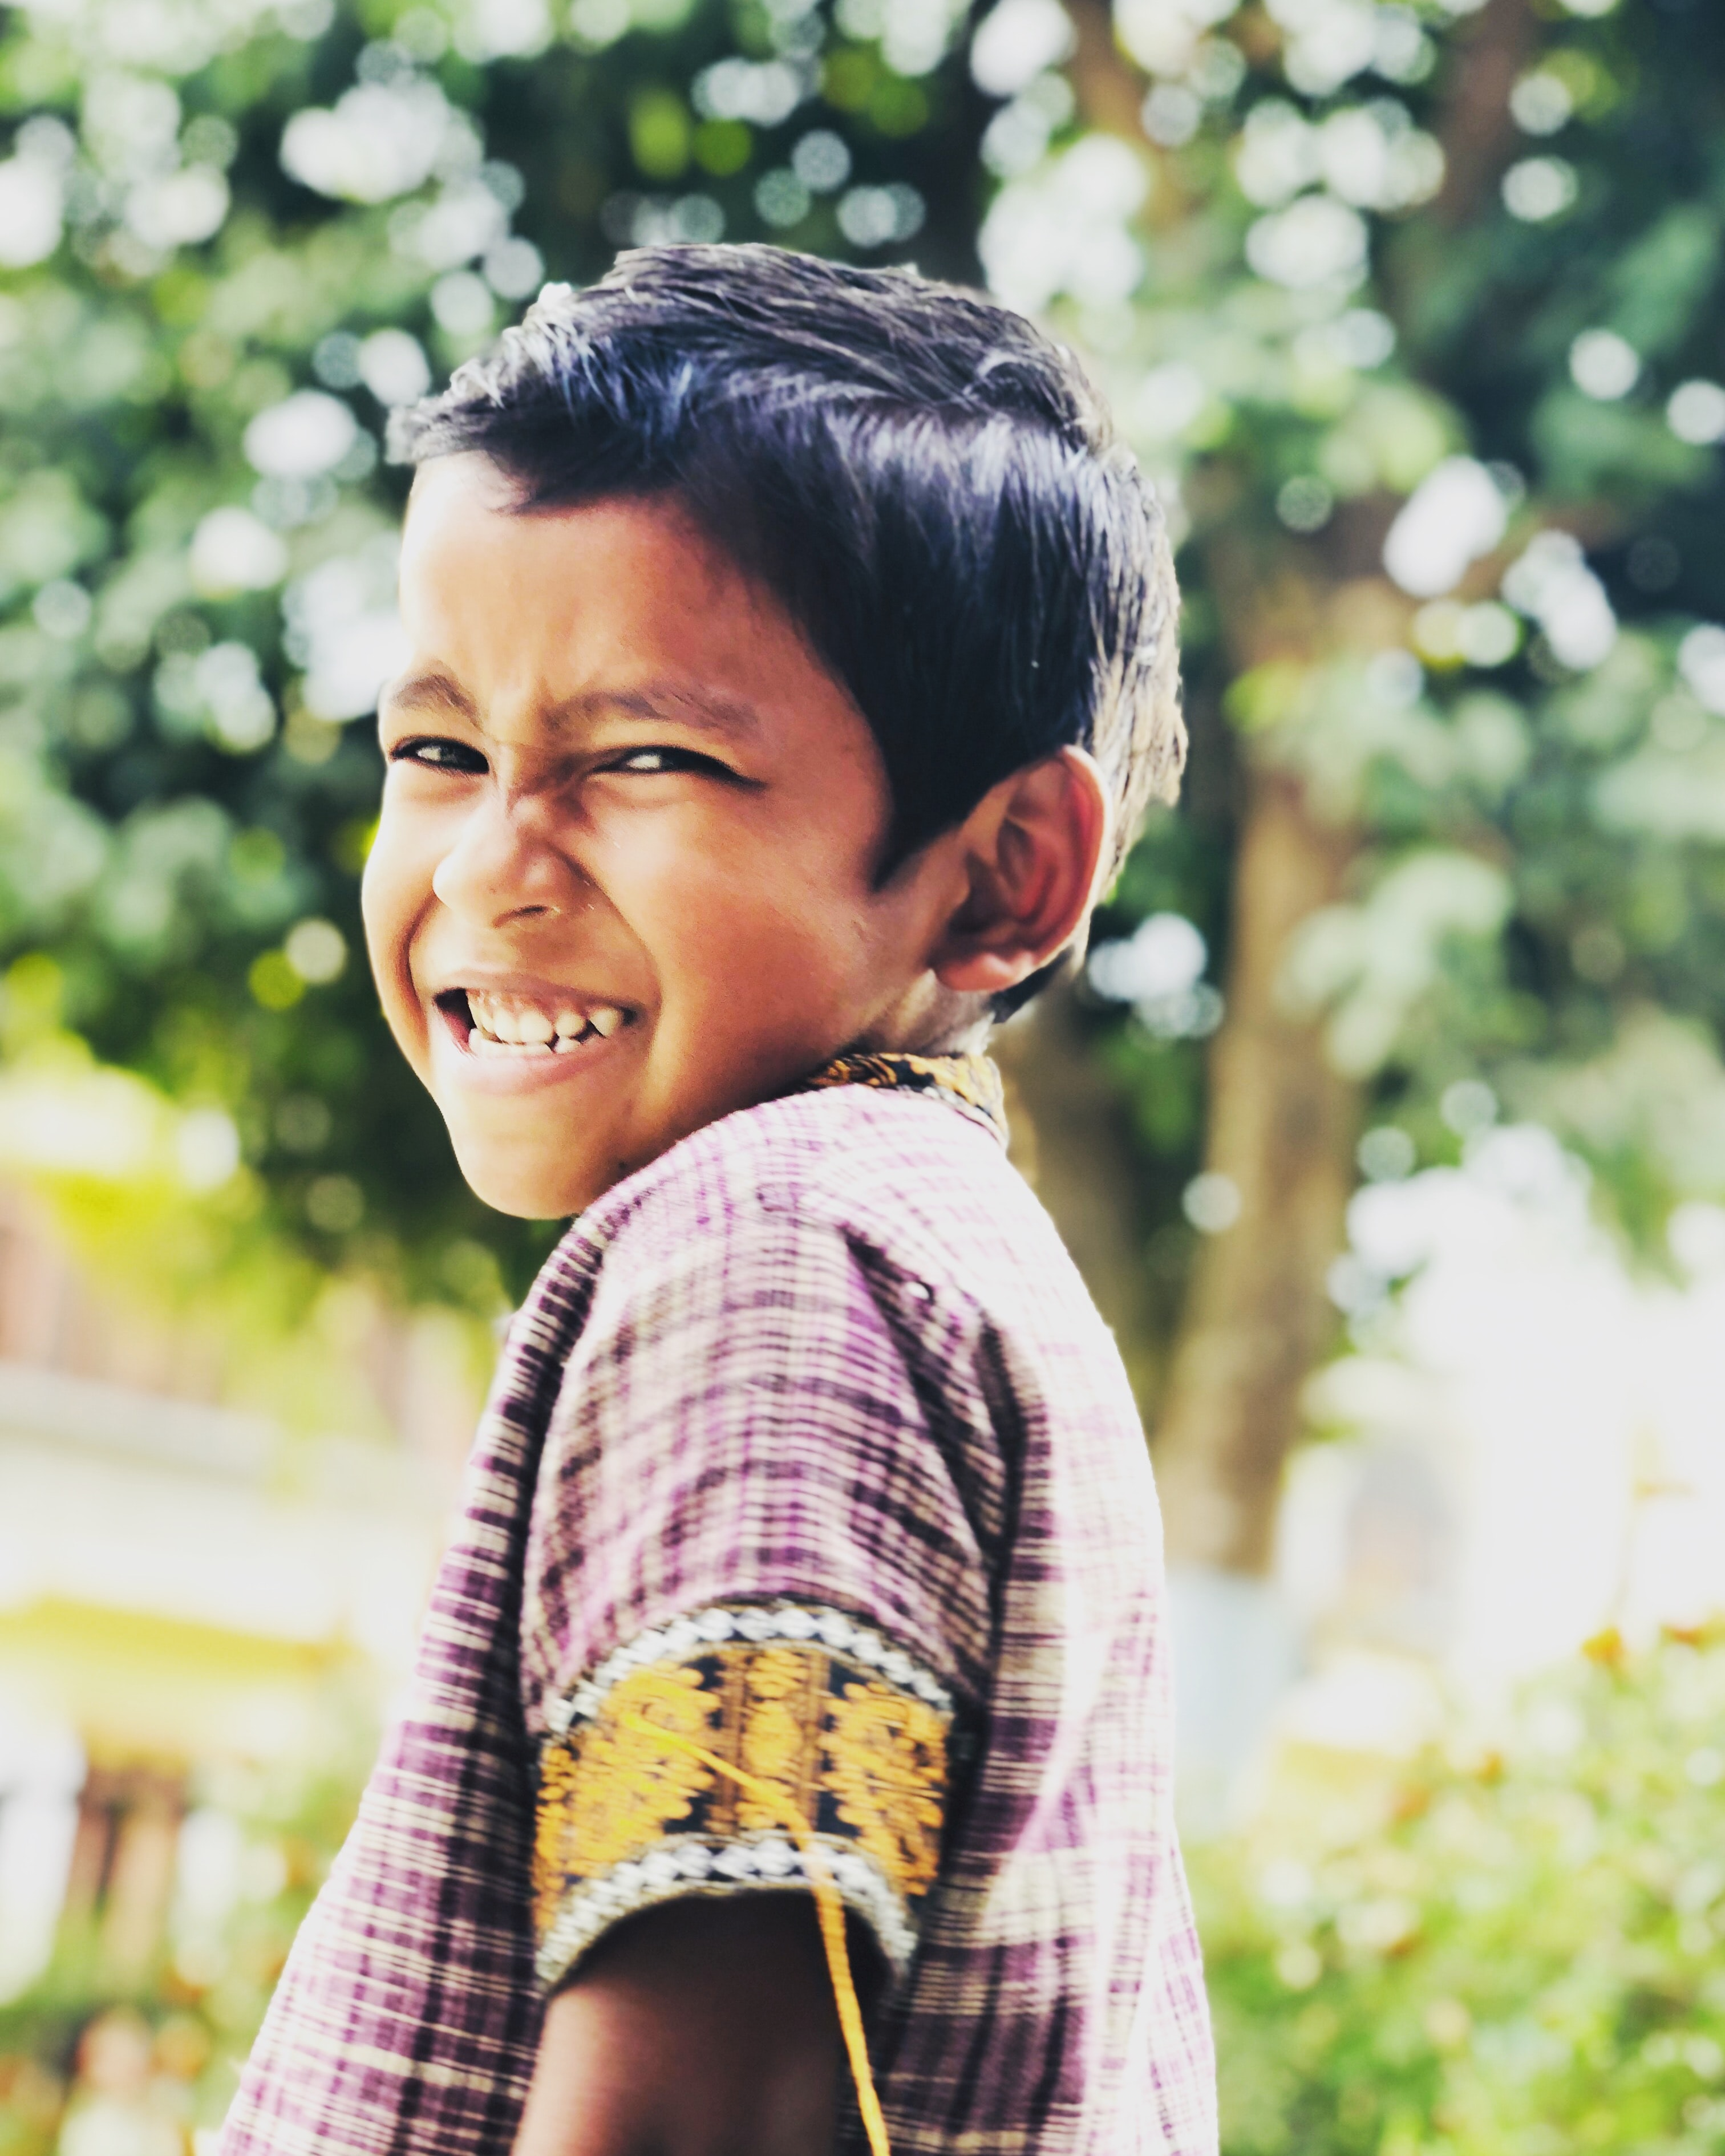 smiling boy looking side view